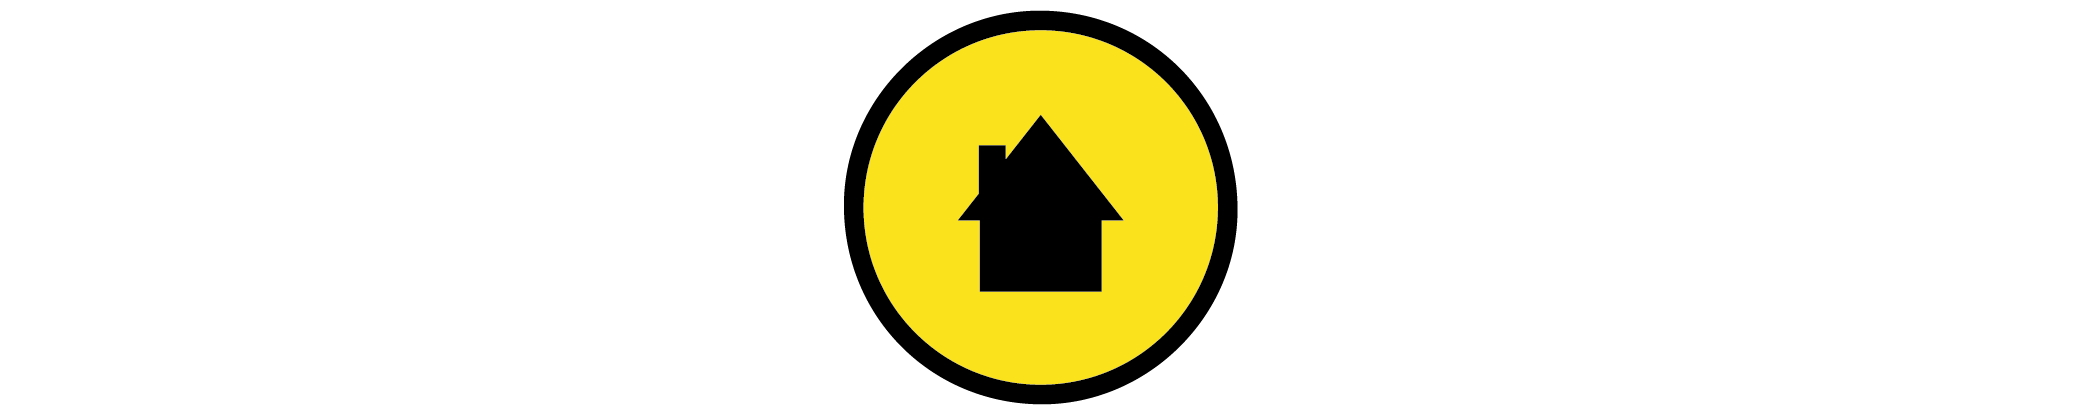 https://weekendrockstars.nl/wp-content/uploads/2021/01/huis-icon-2081x414.png